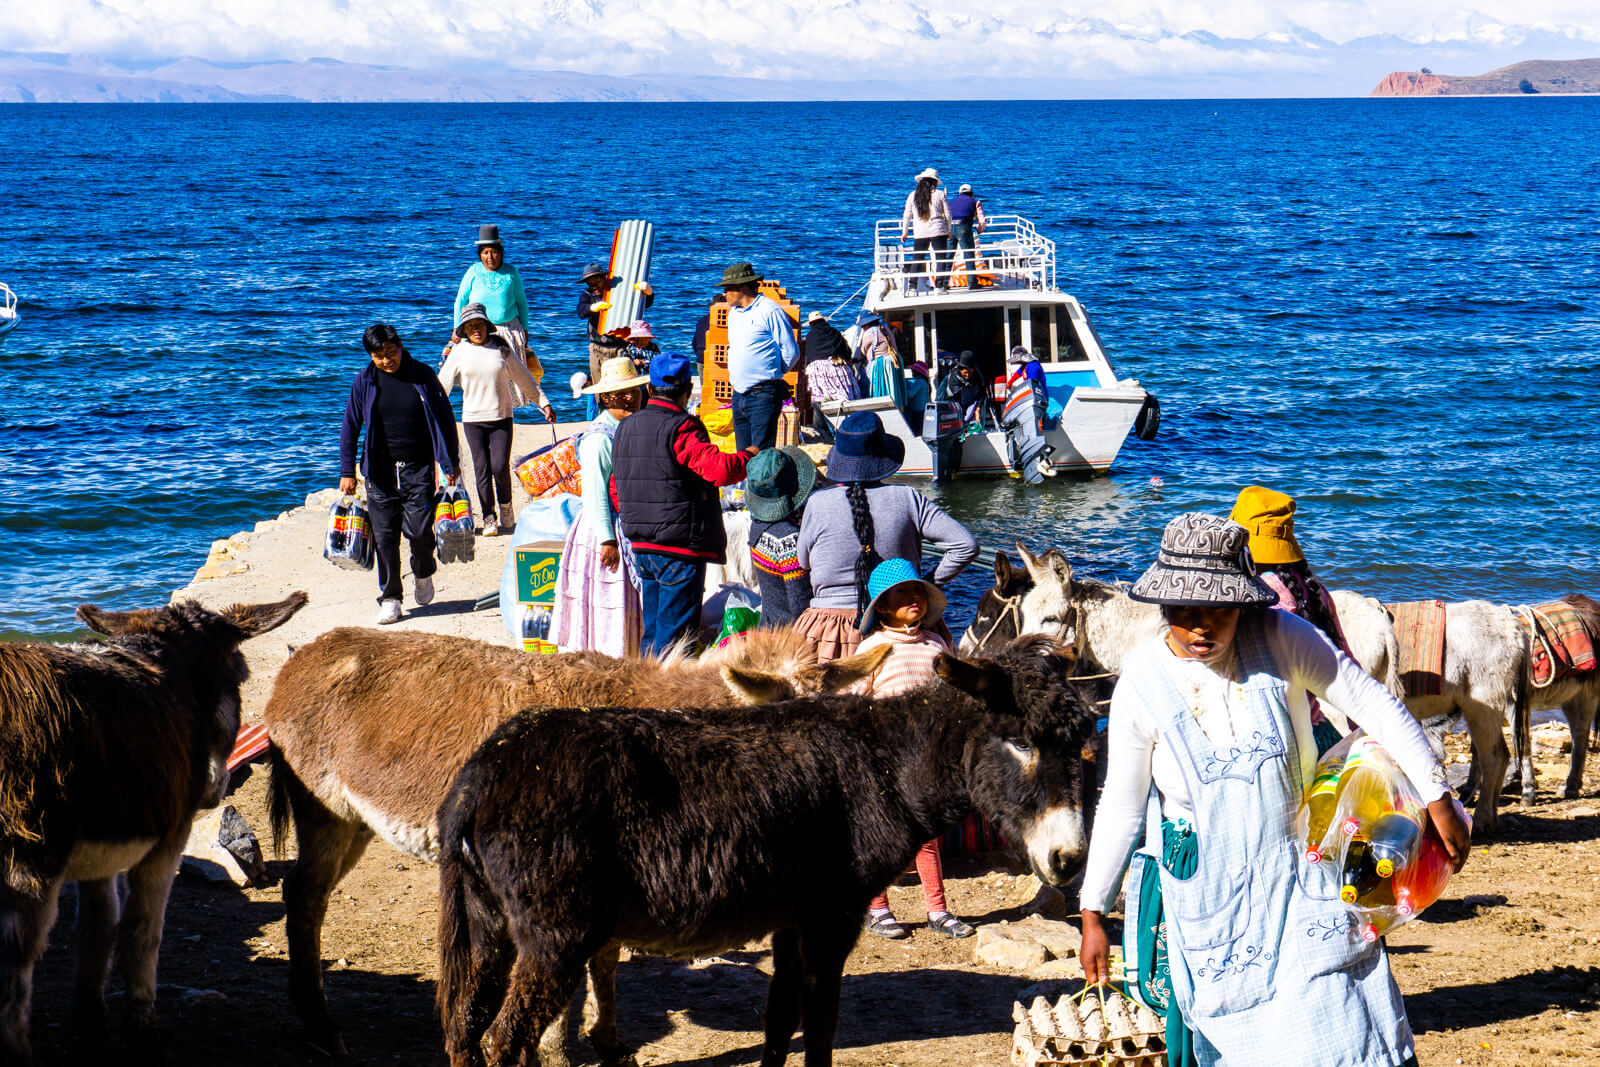 Bolivians taking the boat from Isla del Sol to Copacabana